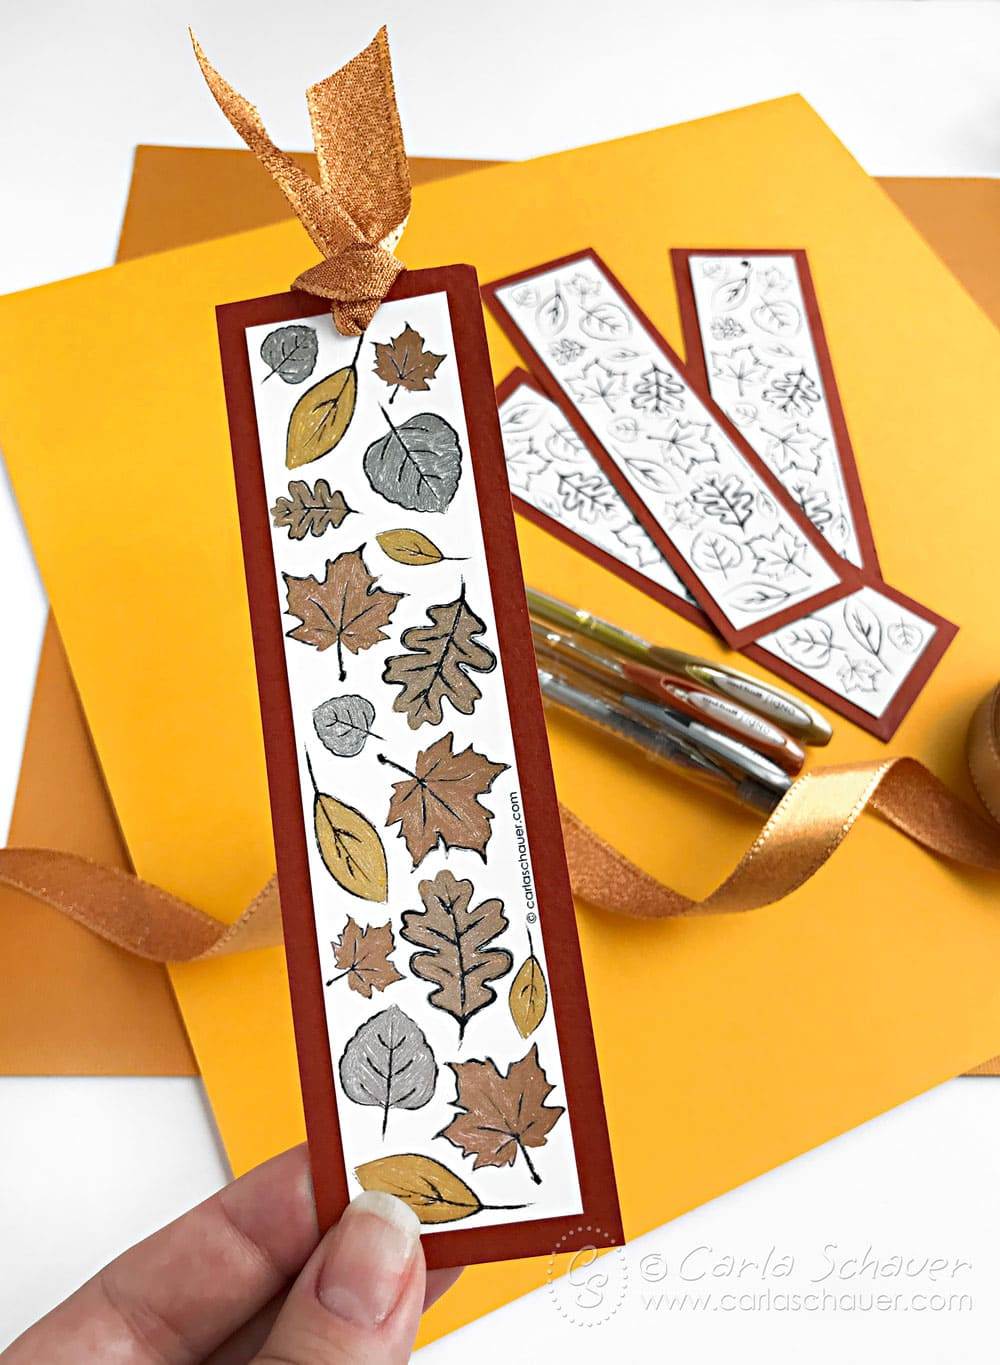 metallic colored leaf bookmark, gel pens, and uncolored leaf bookmarks on yellow background